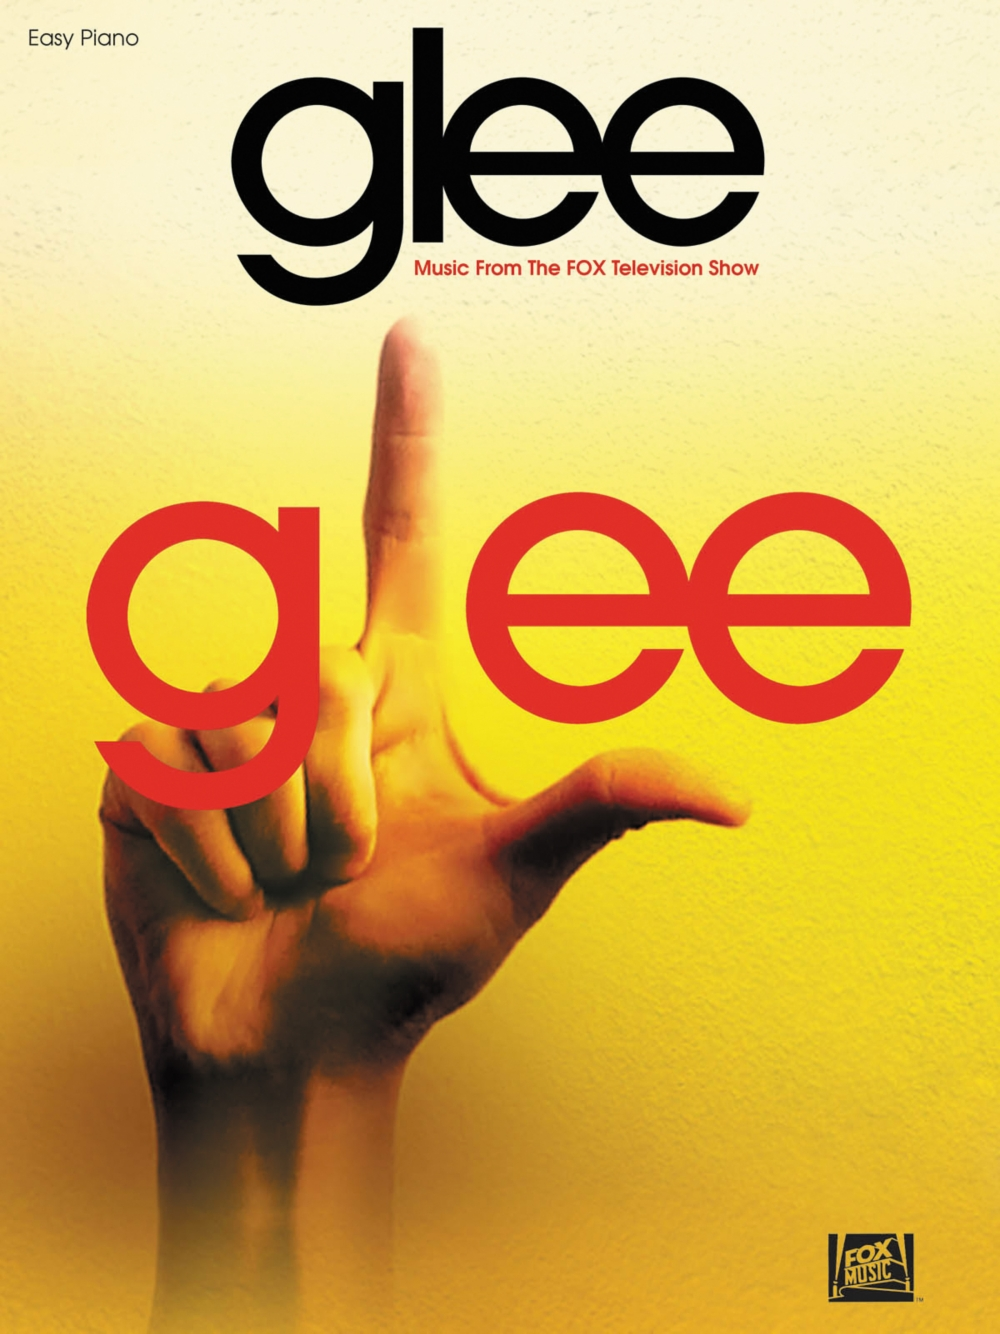 Hal Leonard Glee Music From The Fox Television Show For Easy Piano by Hal Leonard